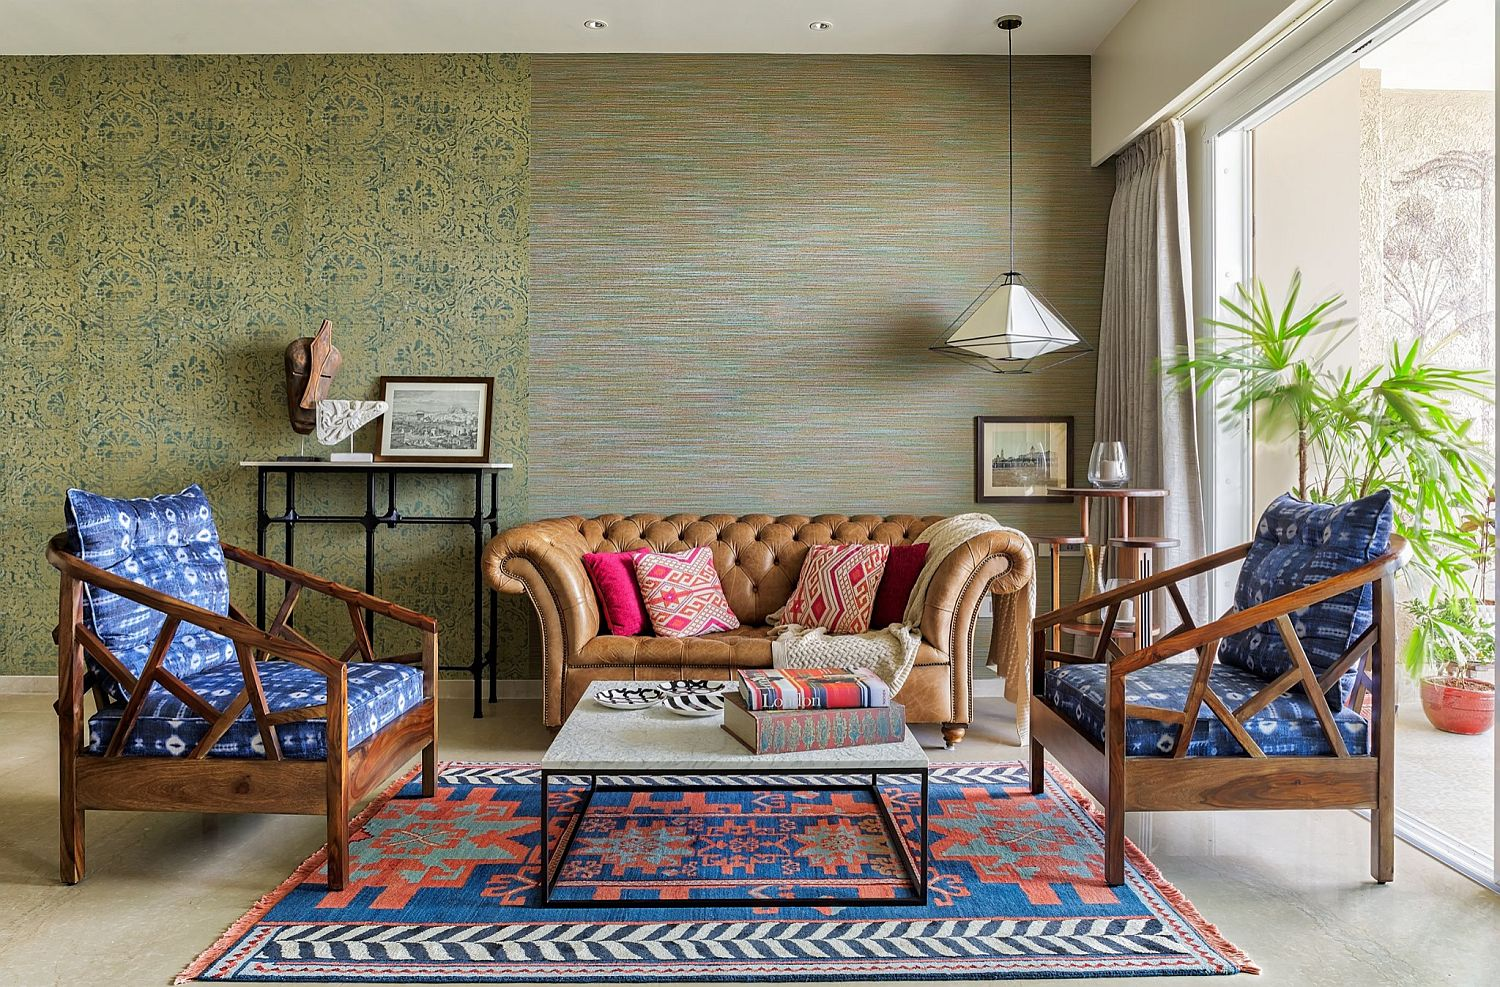 It is decor that brings vivacious color to this modern tropical living room in Mumbai